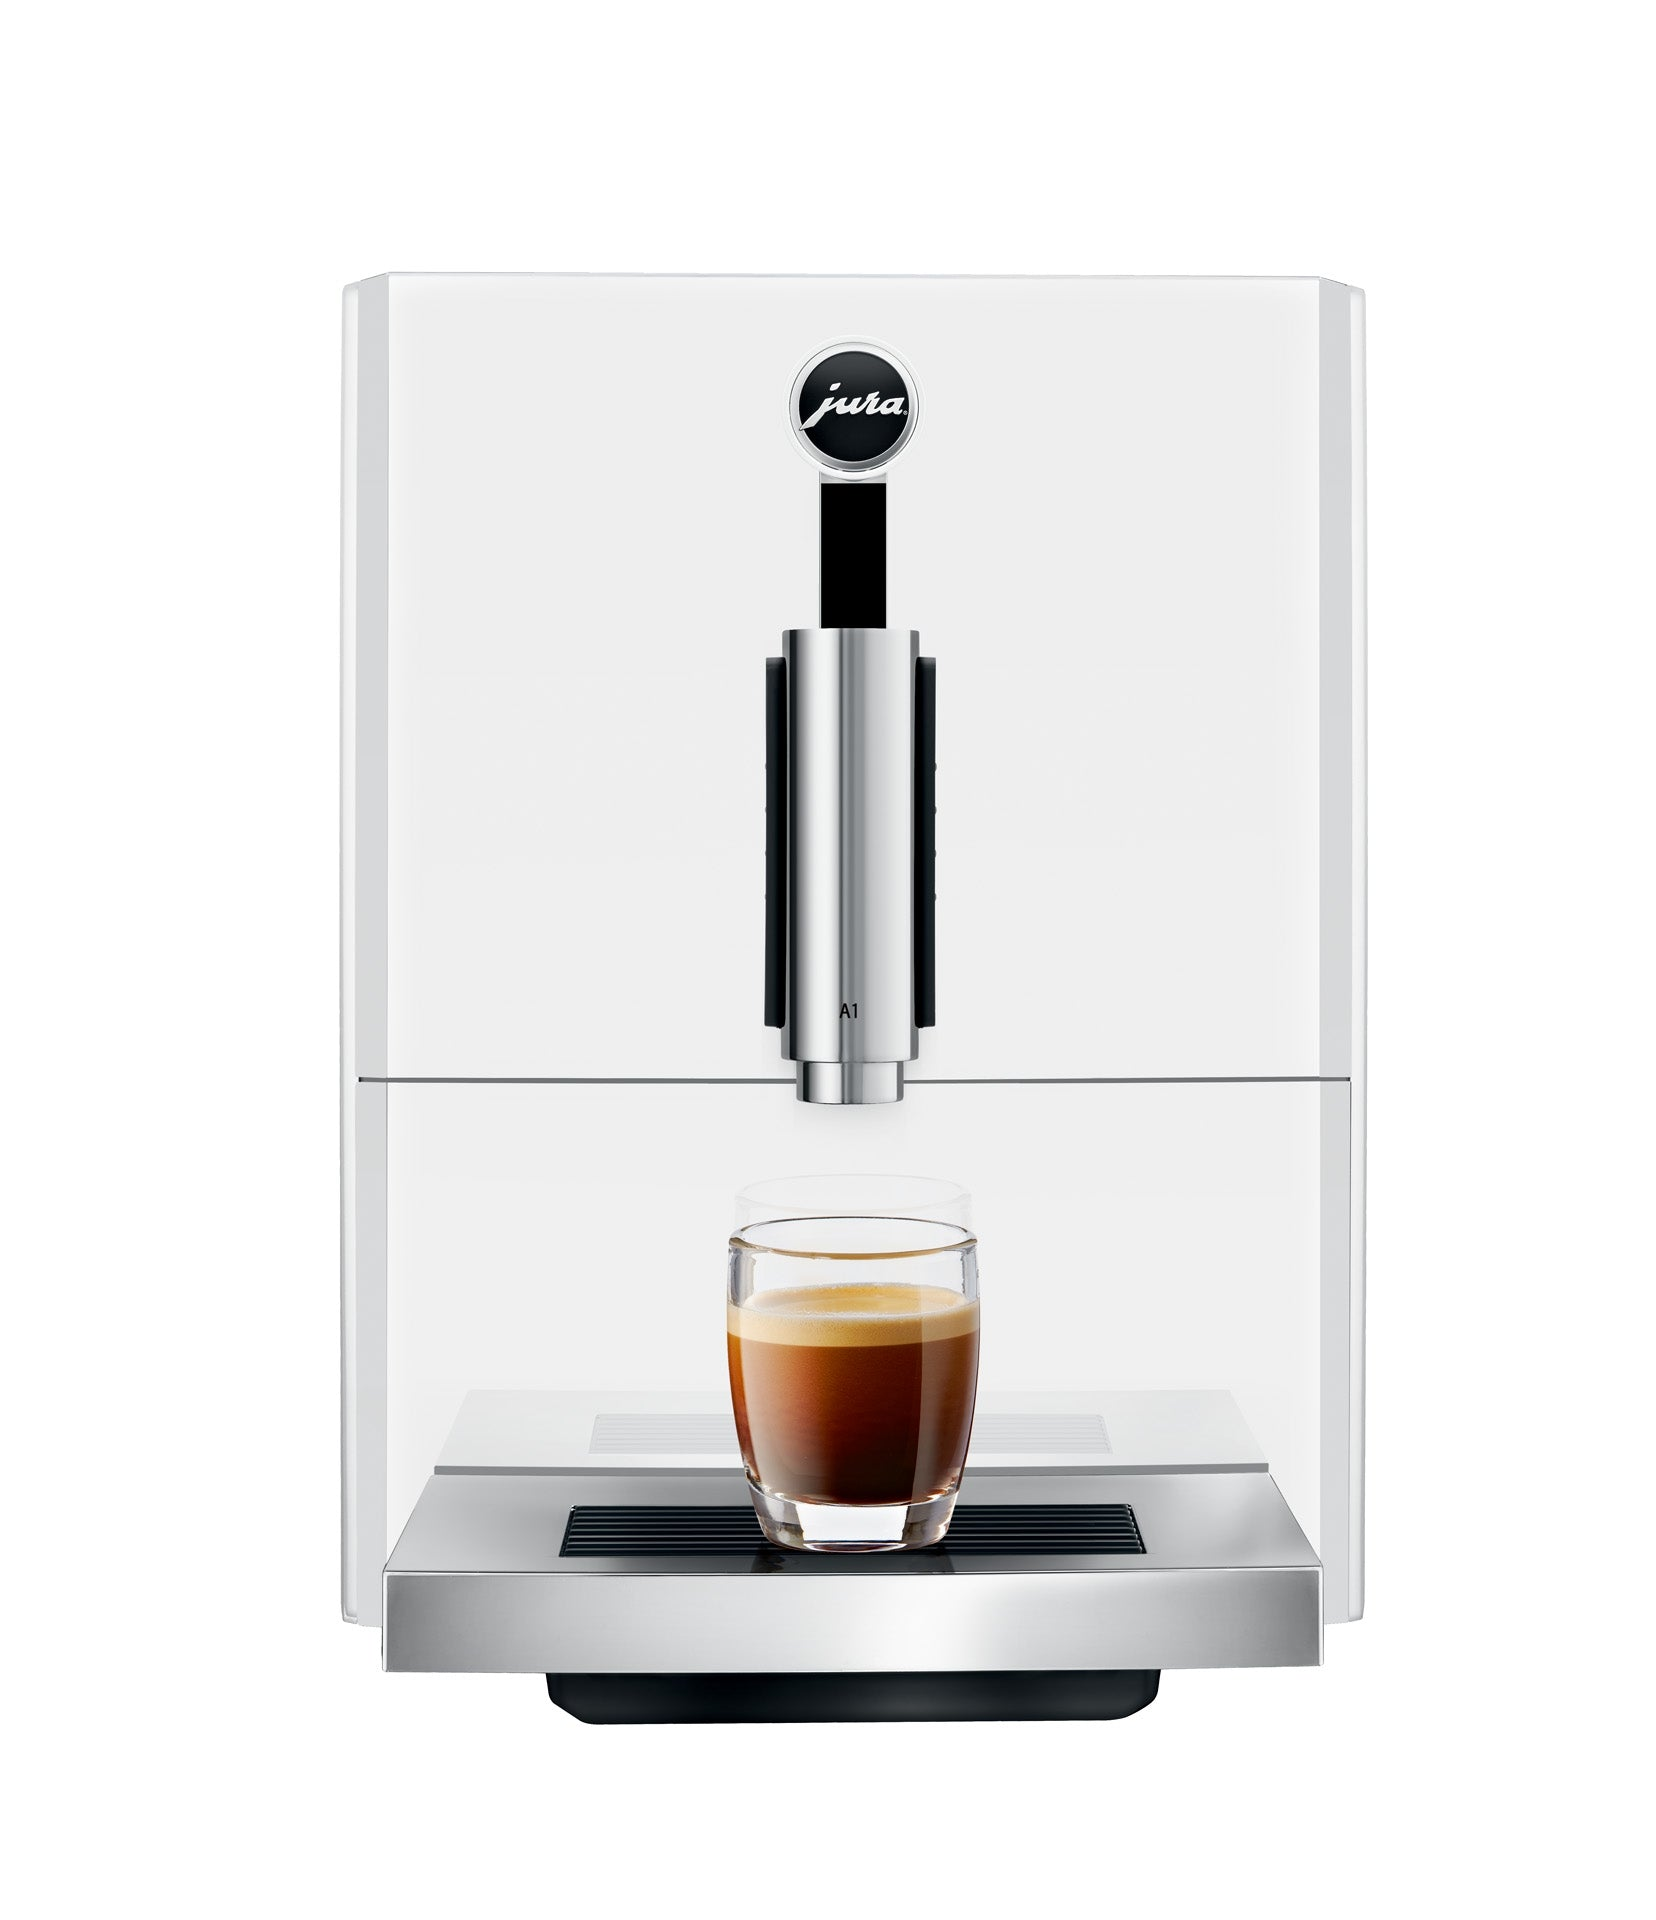 Jura A1 Coffee Maker White - art-of-living-cookshop